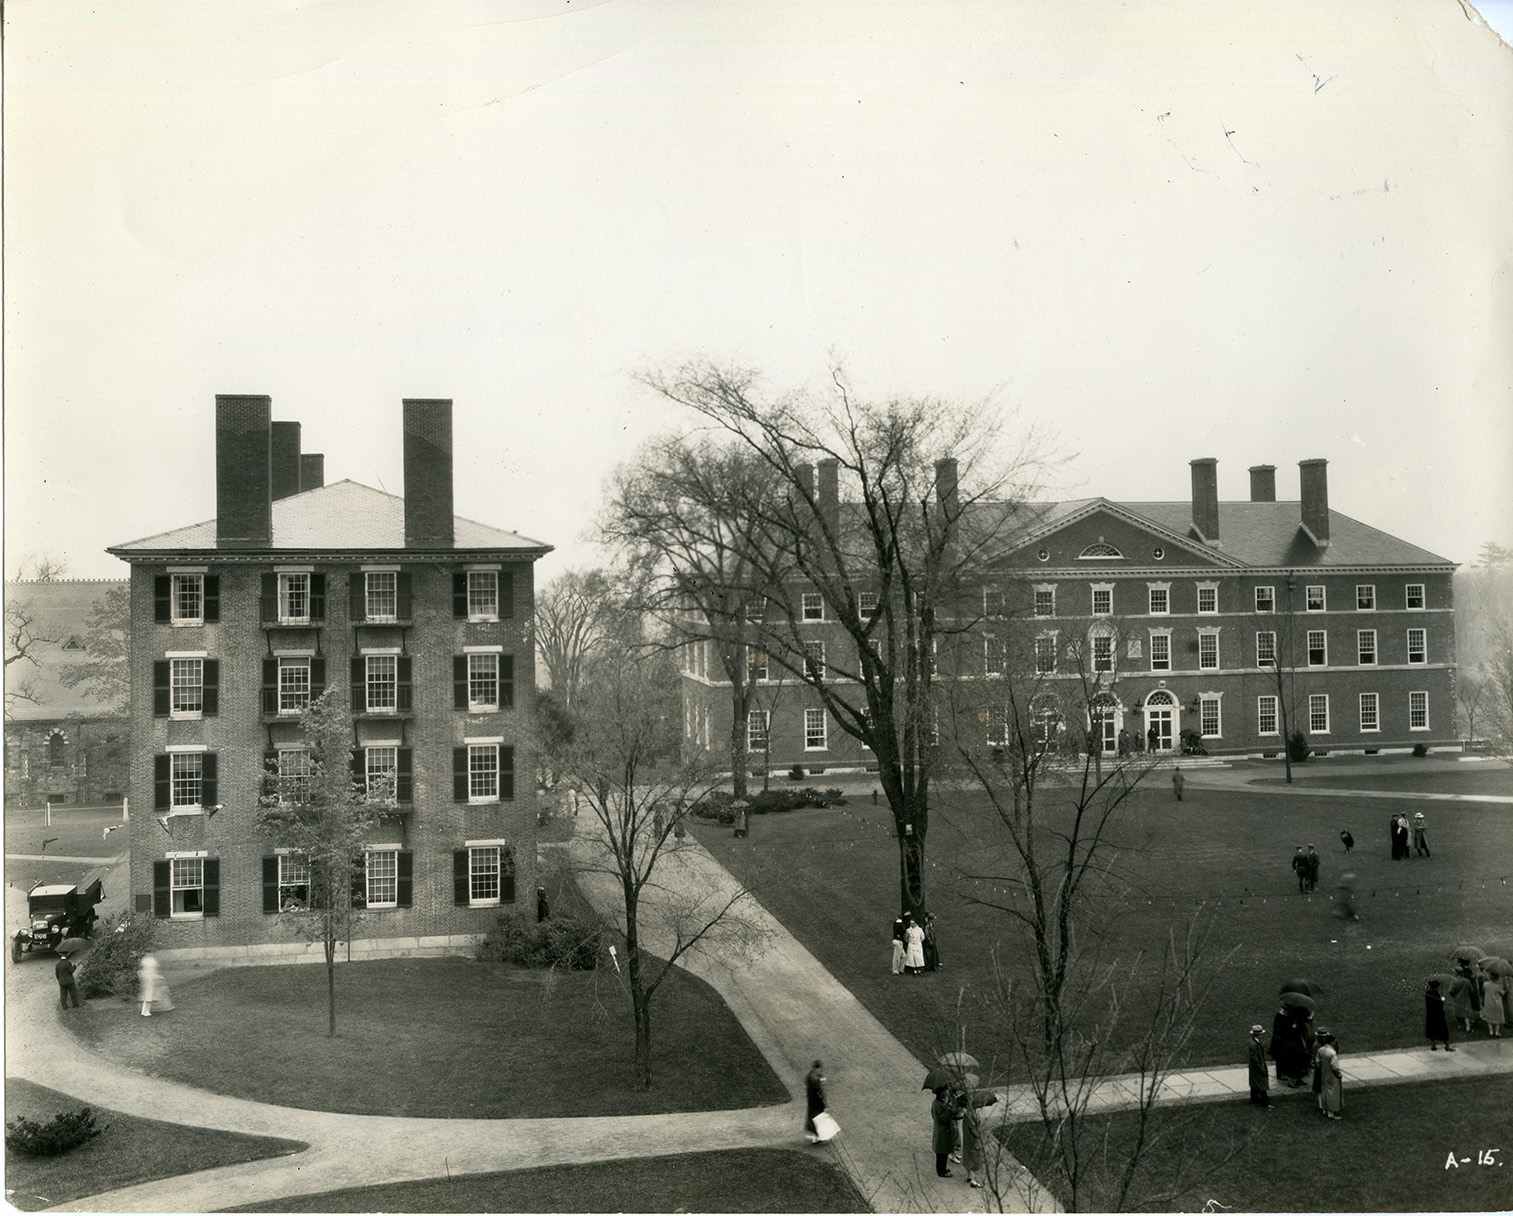 George Washington Hall, 1928. Photograph by George H. Davis. (Foxcroft Hall at left)